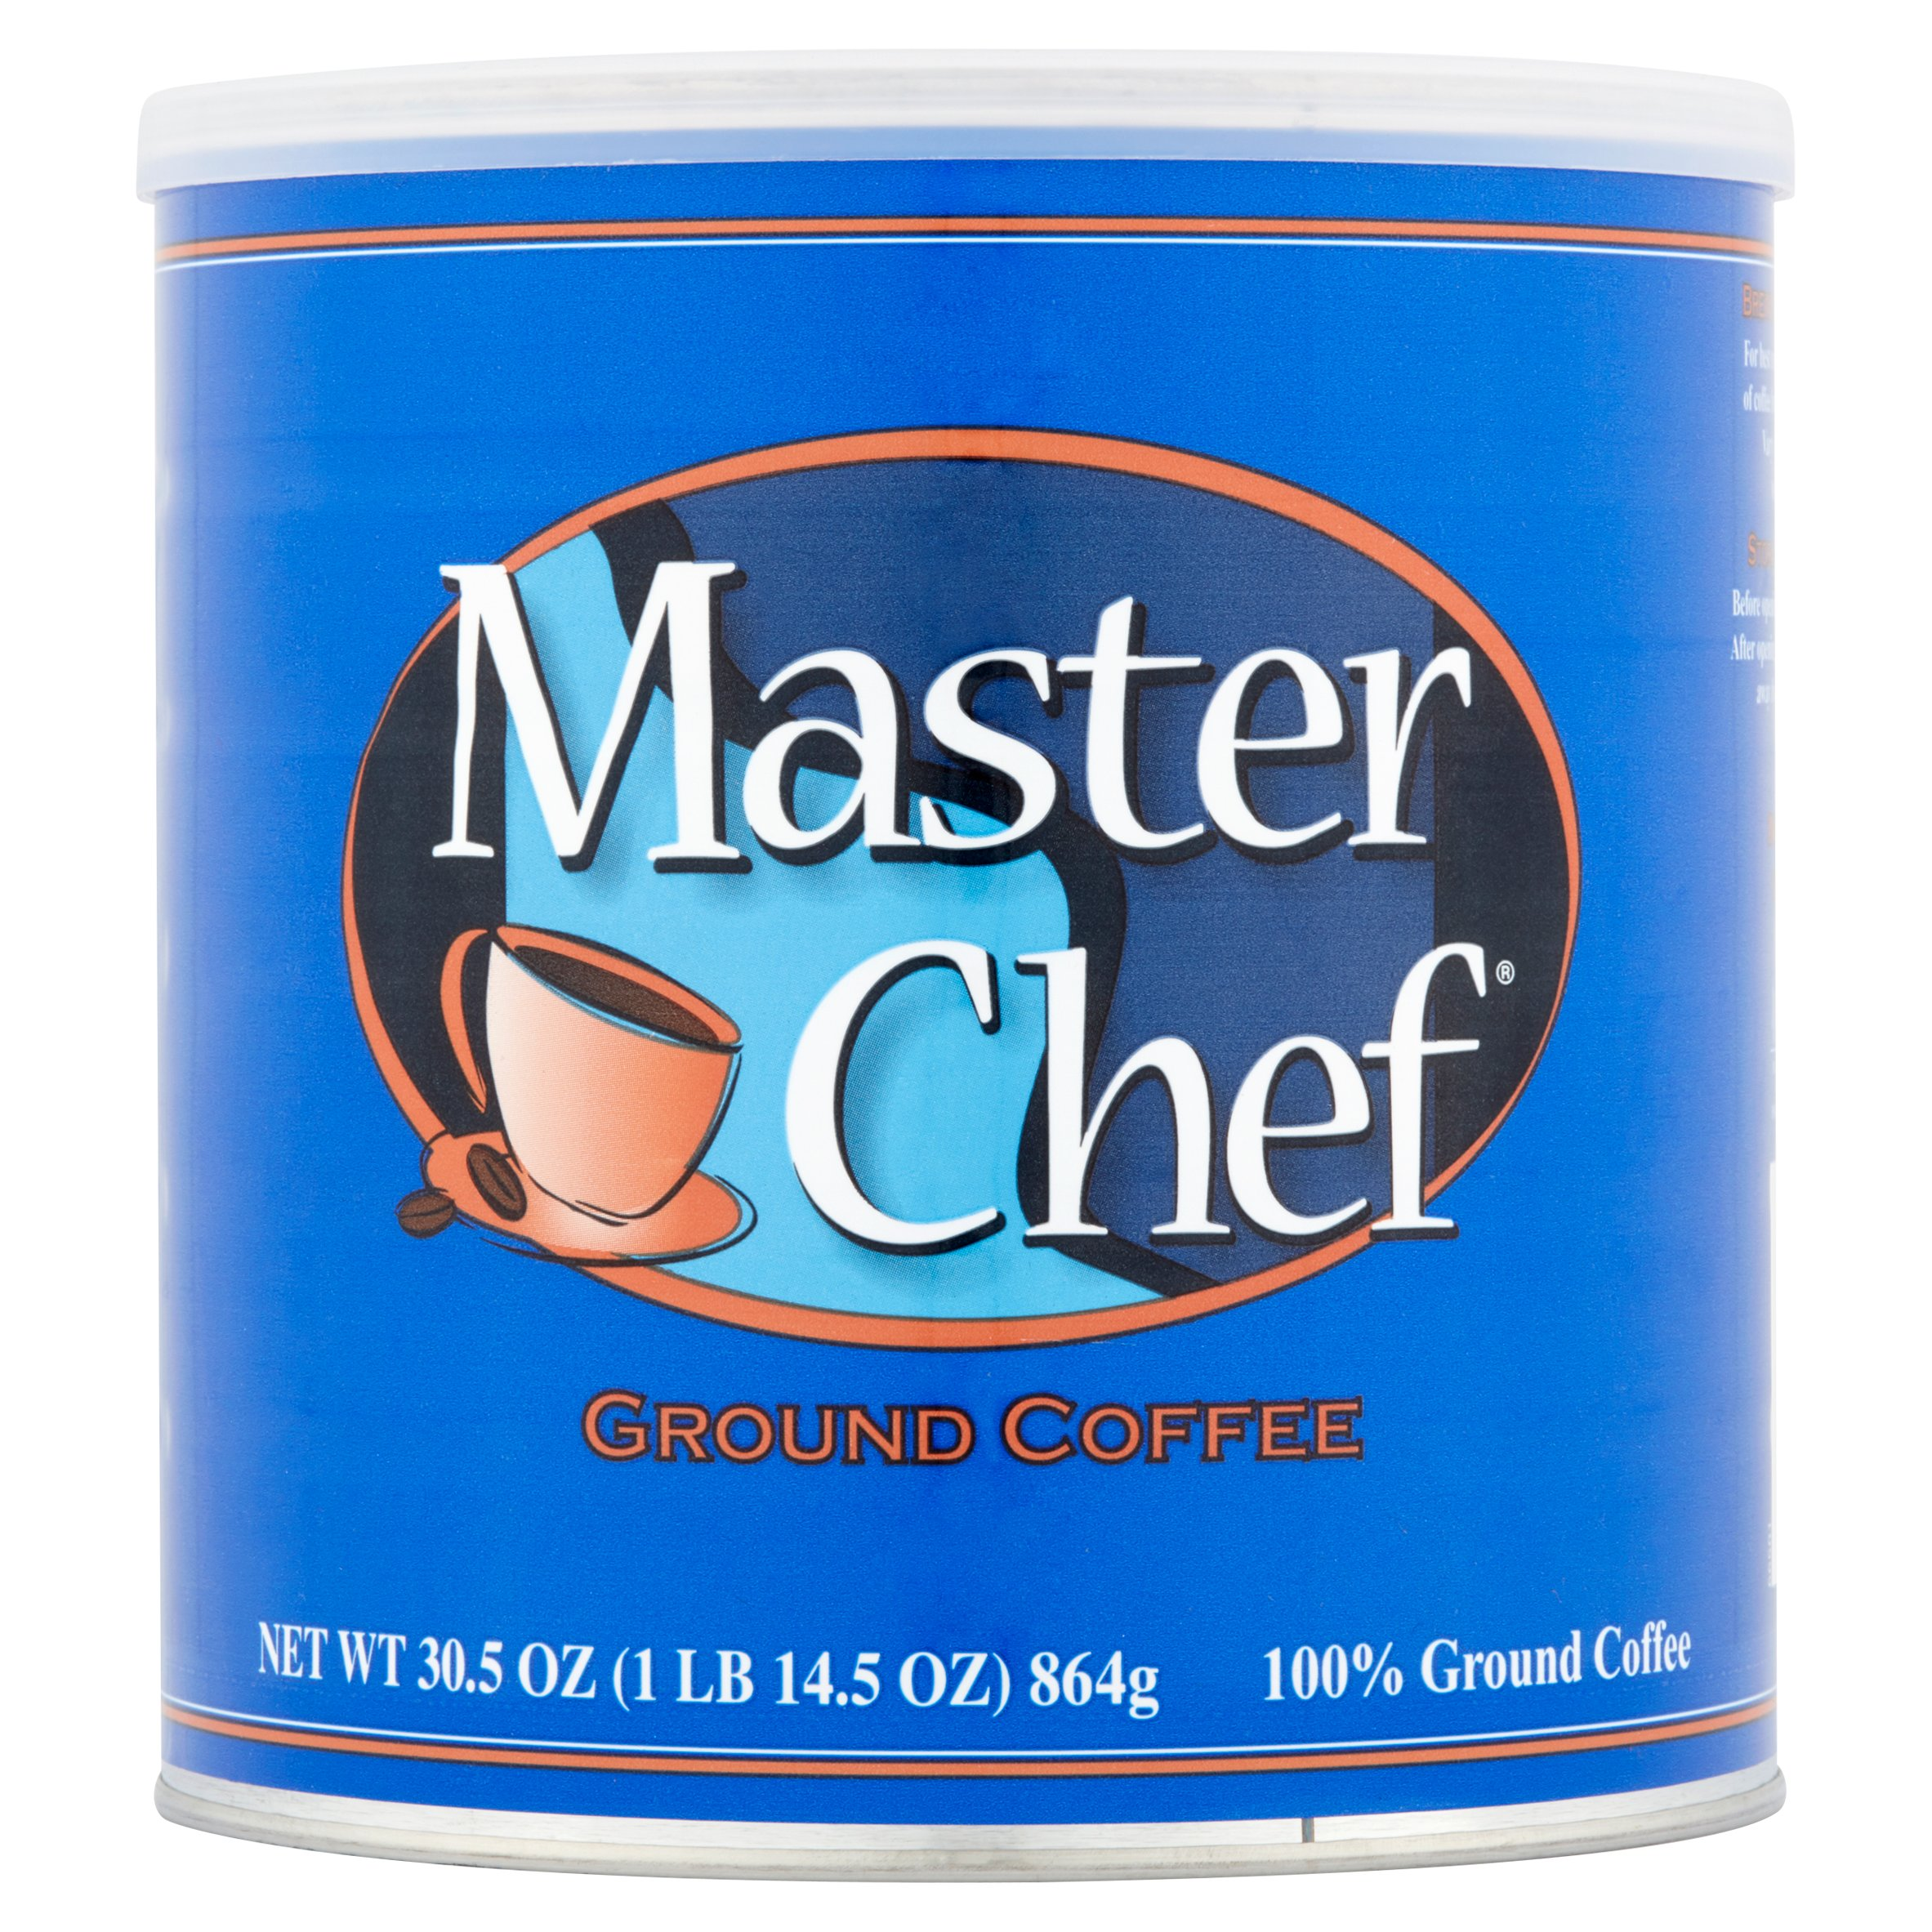 Master Chef Ground Coffee, 30.5 oz